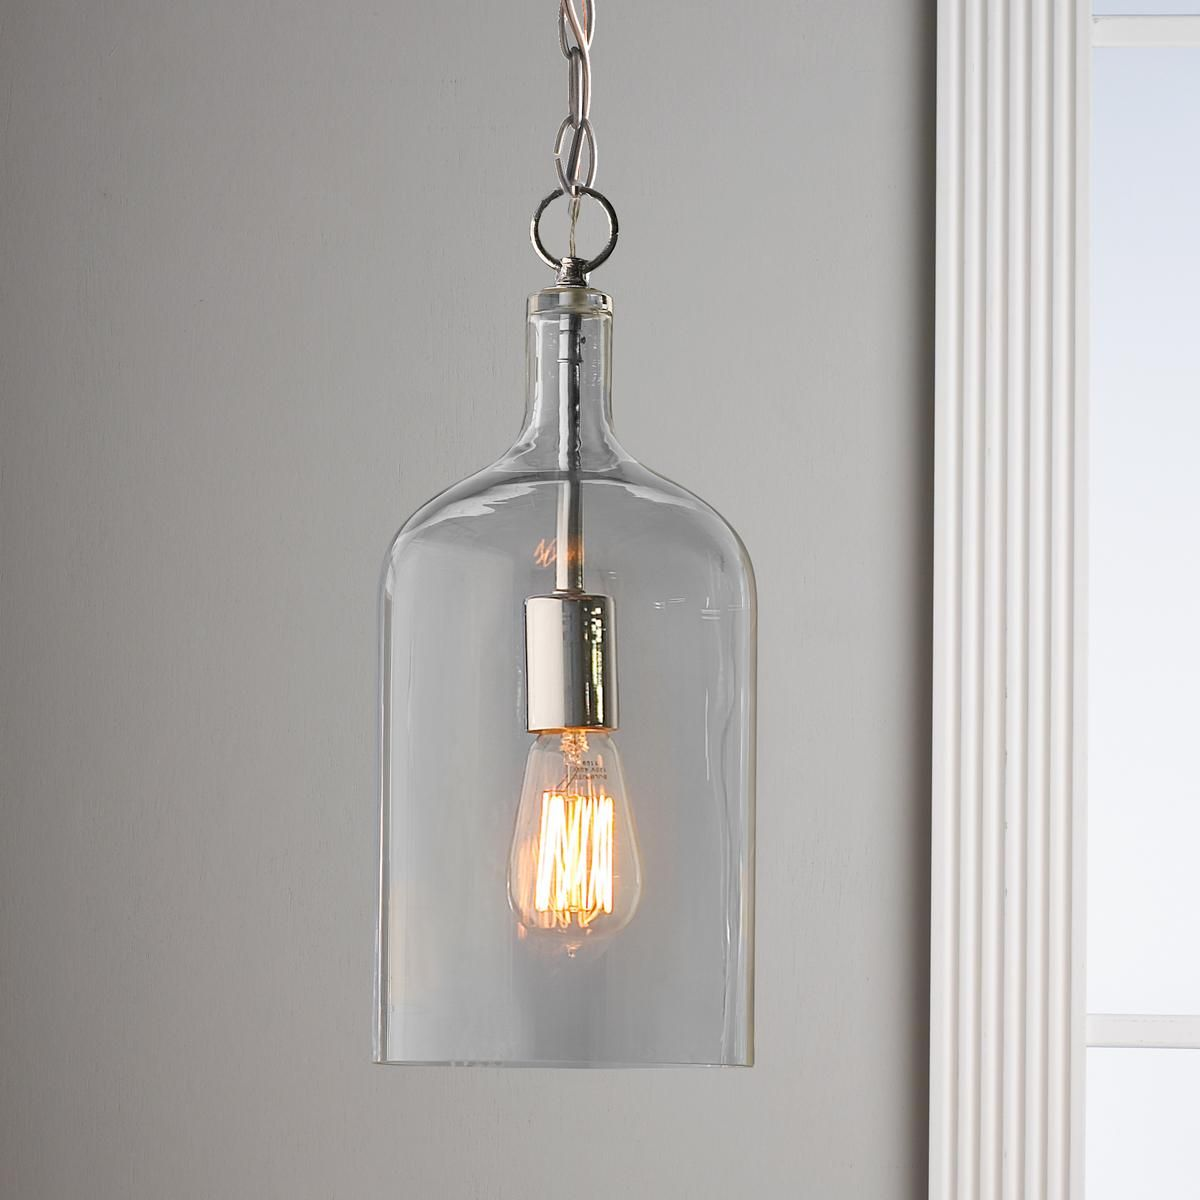 Kitchen Island Pendant Home Depot Lighting Glass Jug Light Litchfield Turnpike Bethany